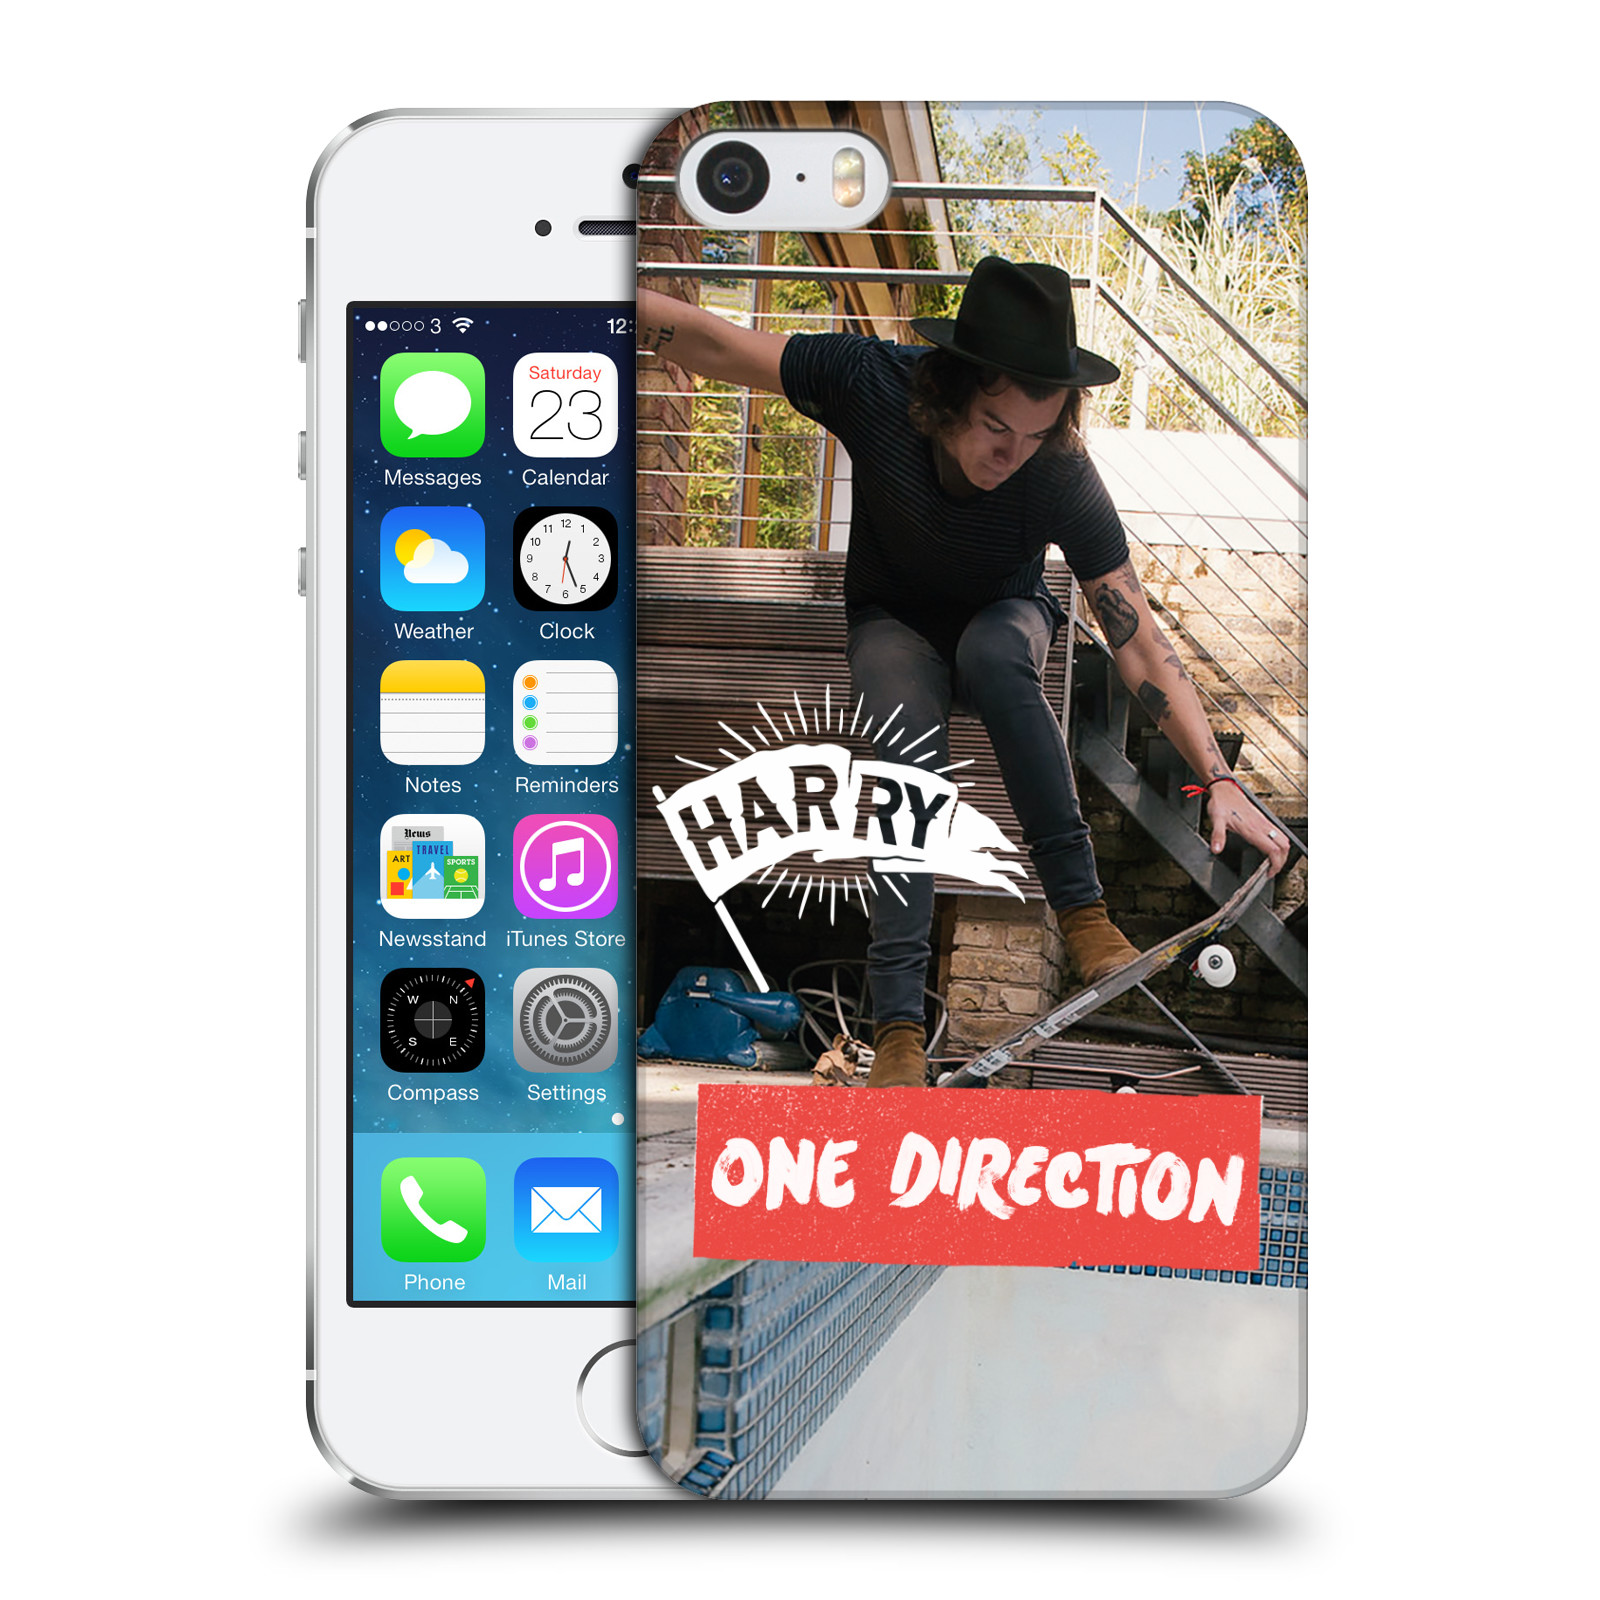 One Direction Iphone 5 Case 2013 OFFICIAL ONE DIRECTION...